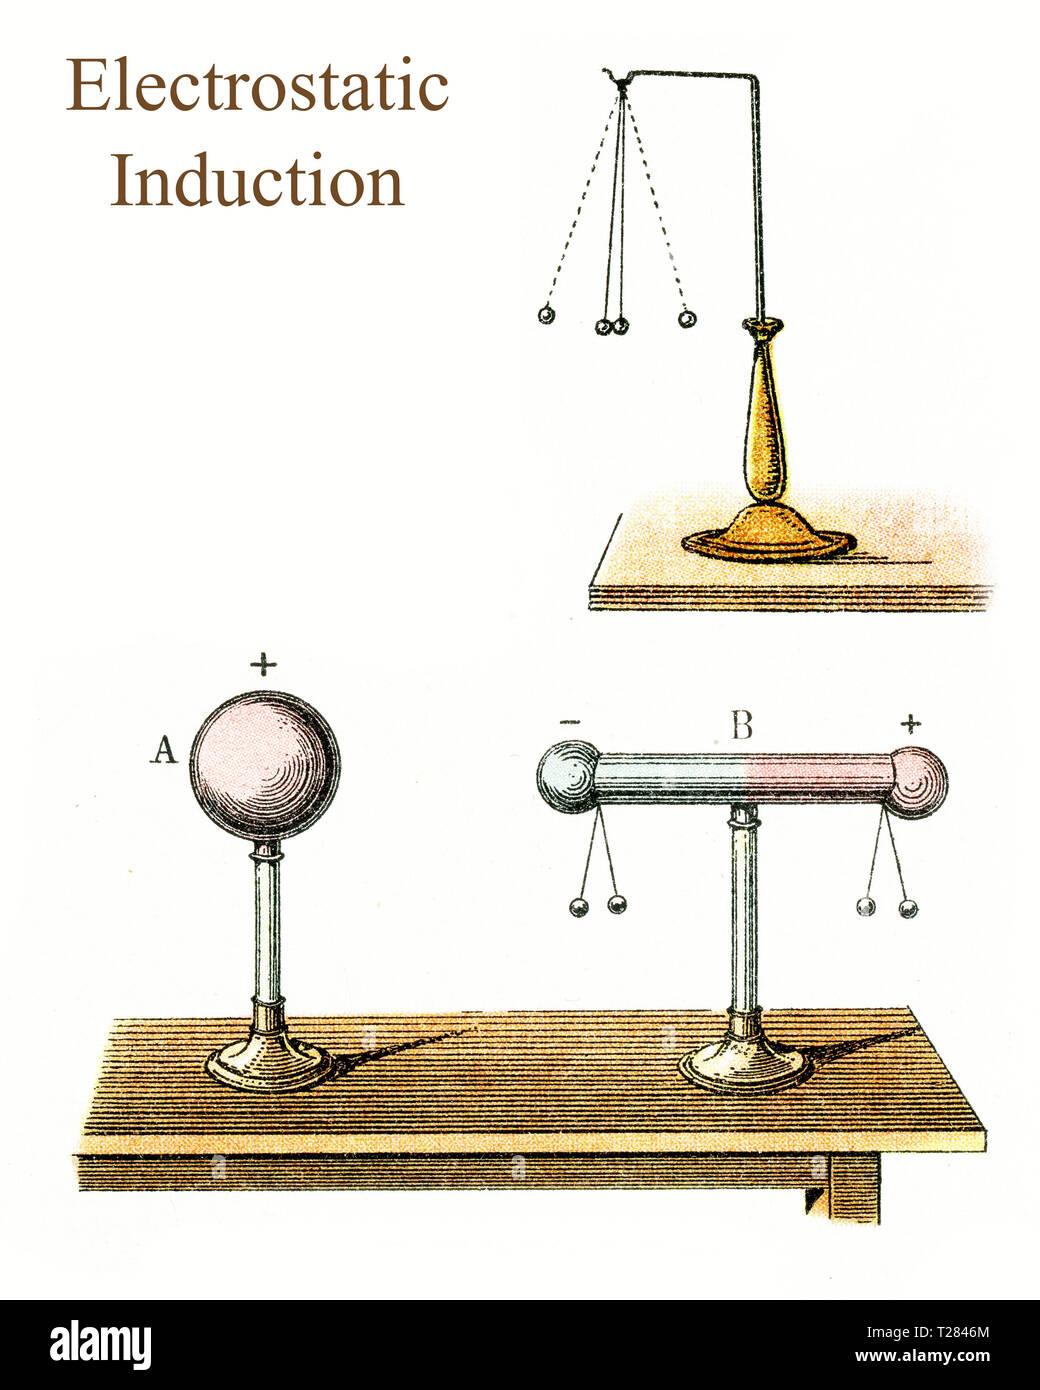 Electrostatic induction is the modification of the distribution of the electric charges on a material in the presence of a charged body: it develops a positive charge on one end and a negative charge on the other. - Stock Image